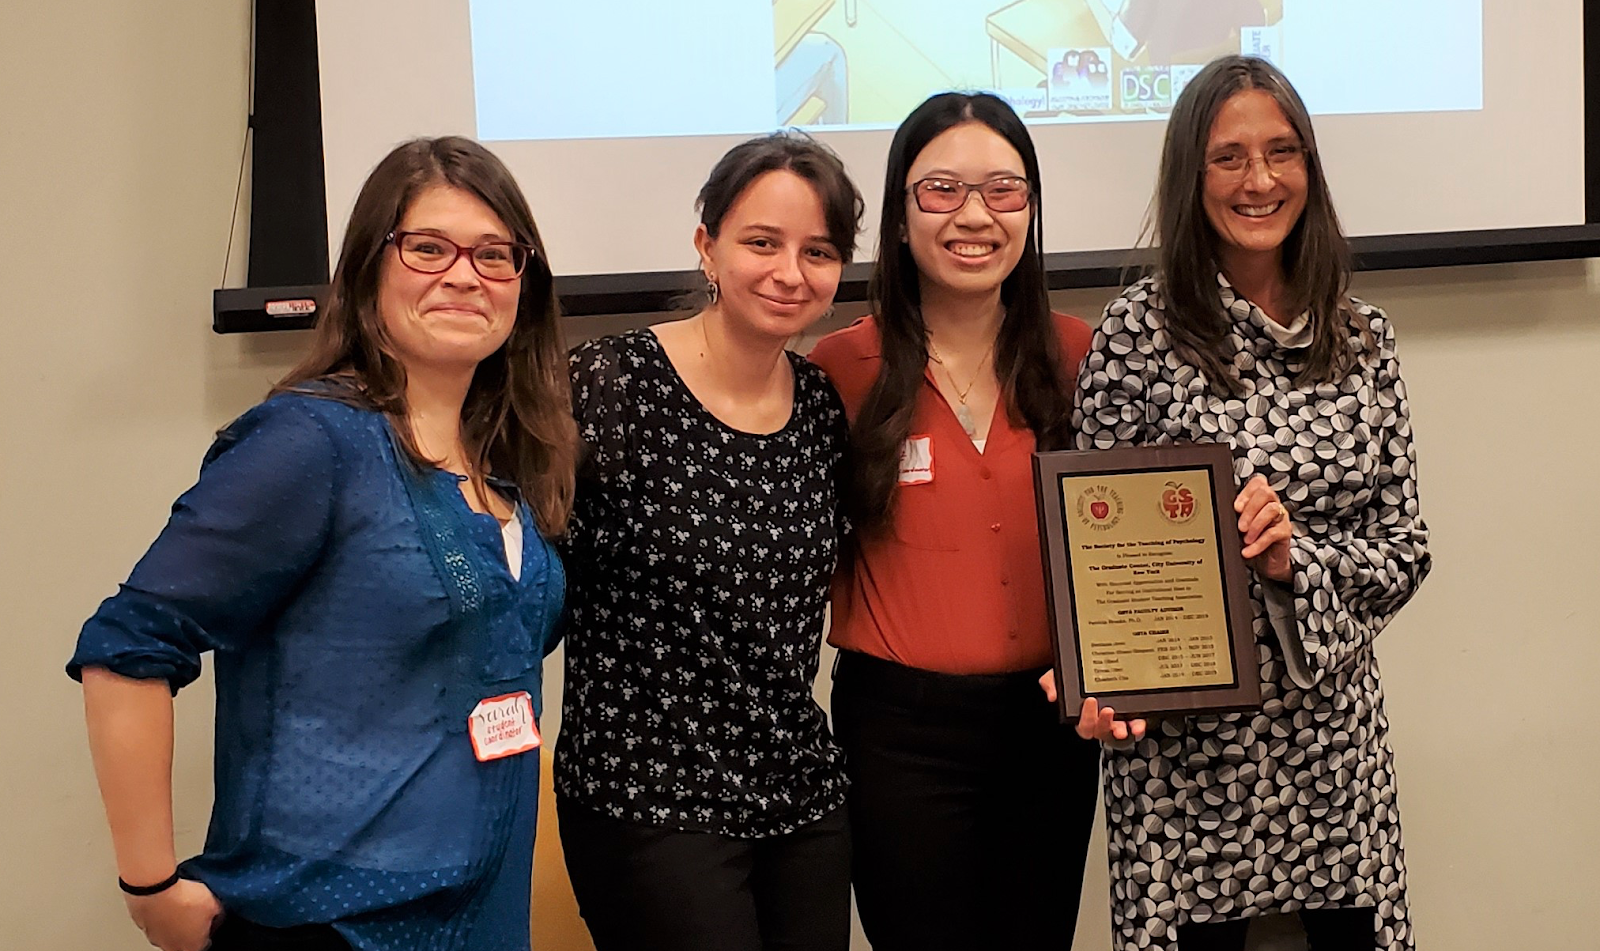 GSTA Blog Editor Sarah Frantz, Deputy Chair Jessica Brodsky, Chair Elizabeth Che, and Faculty Advisor Dr. Patricia Brooks sharing the STP Special Recognition Award at Pedagogy Day